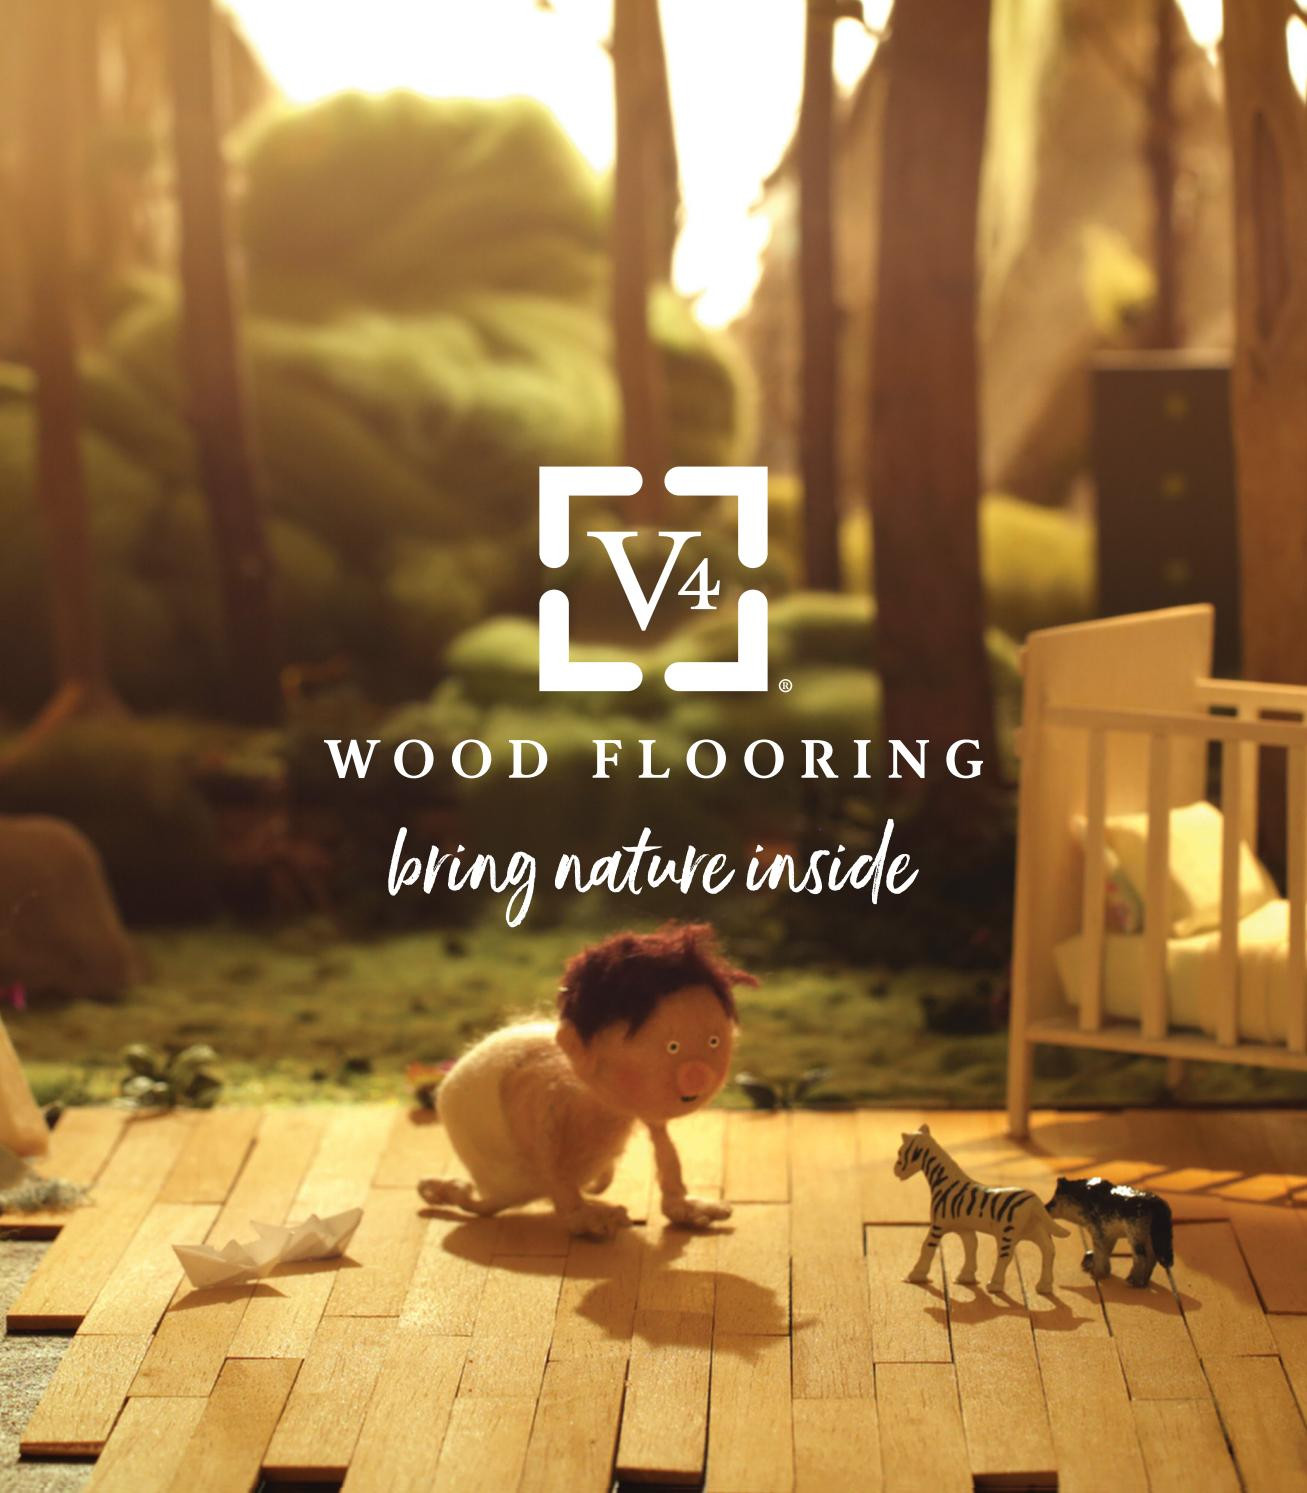 Best Way to Install Engineered Hardwood Flooring On Concrete Of V4 Wood Flooring Spring Catalogue 2018 by V4 Wood Flooring issuu with Page 1